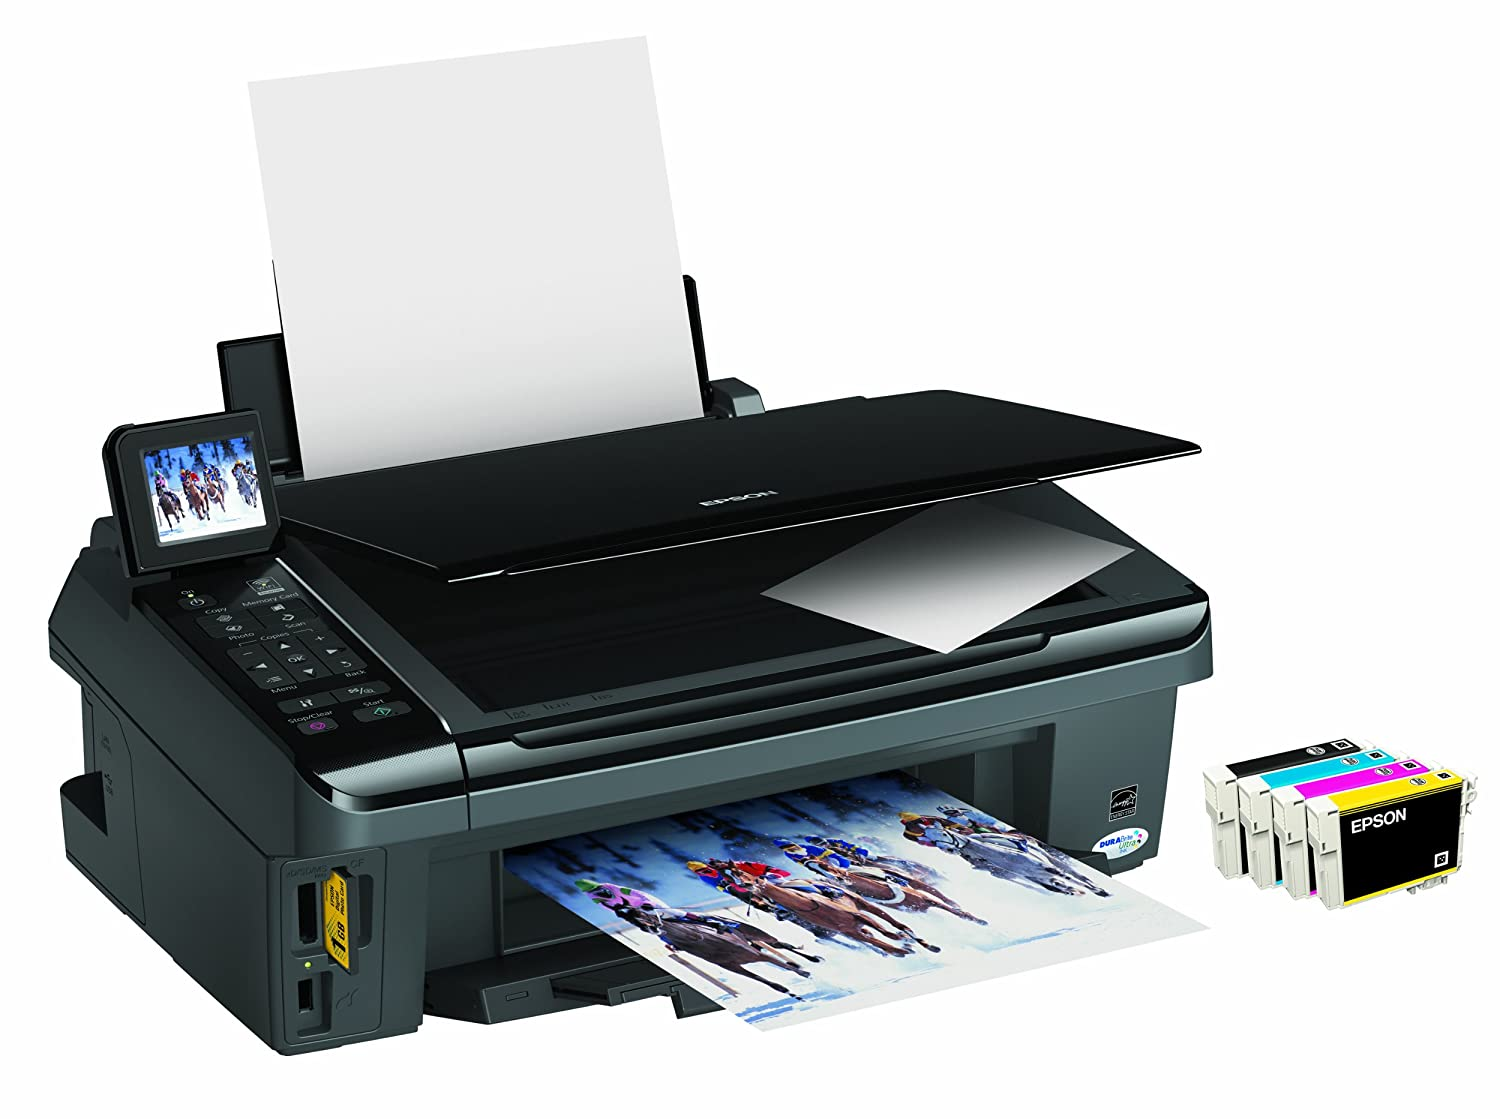 EPSON SX510 WINDOWS 8.1 DRIVER DOWNLOAD